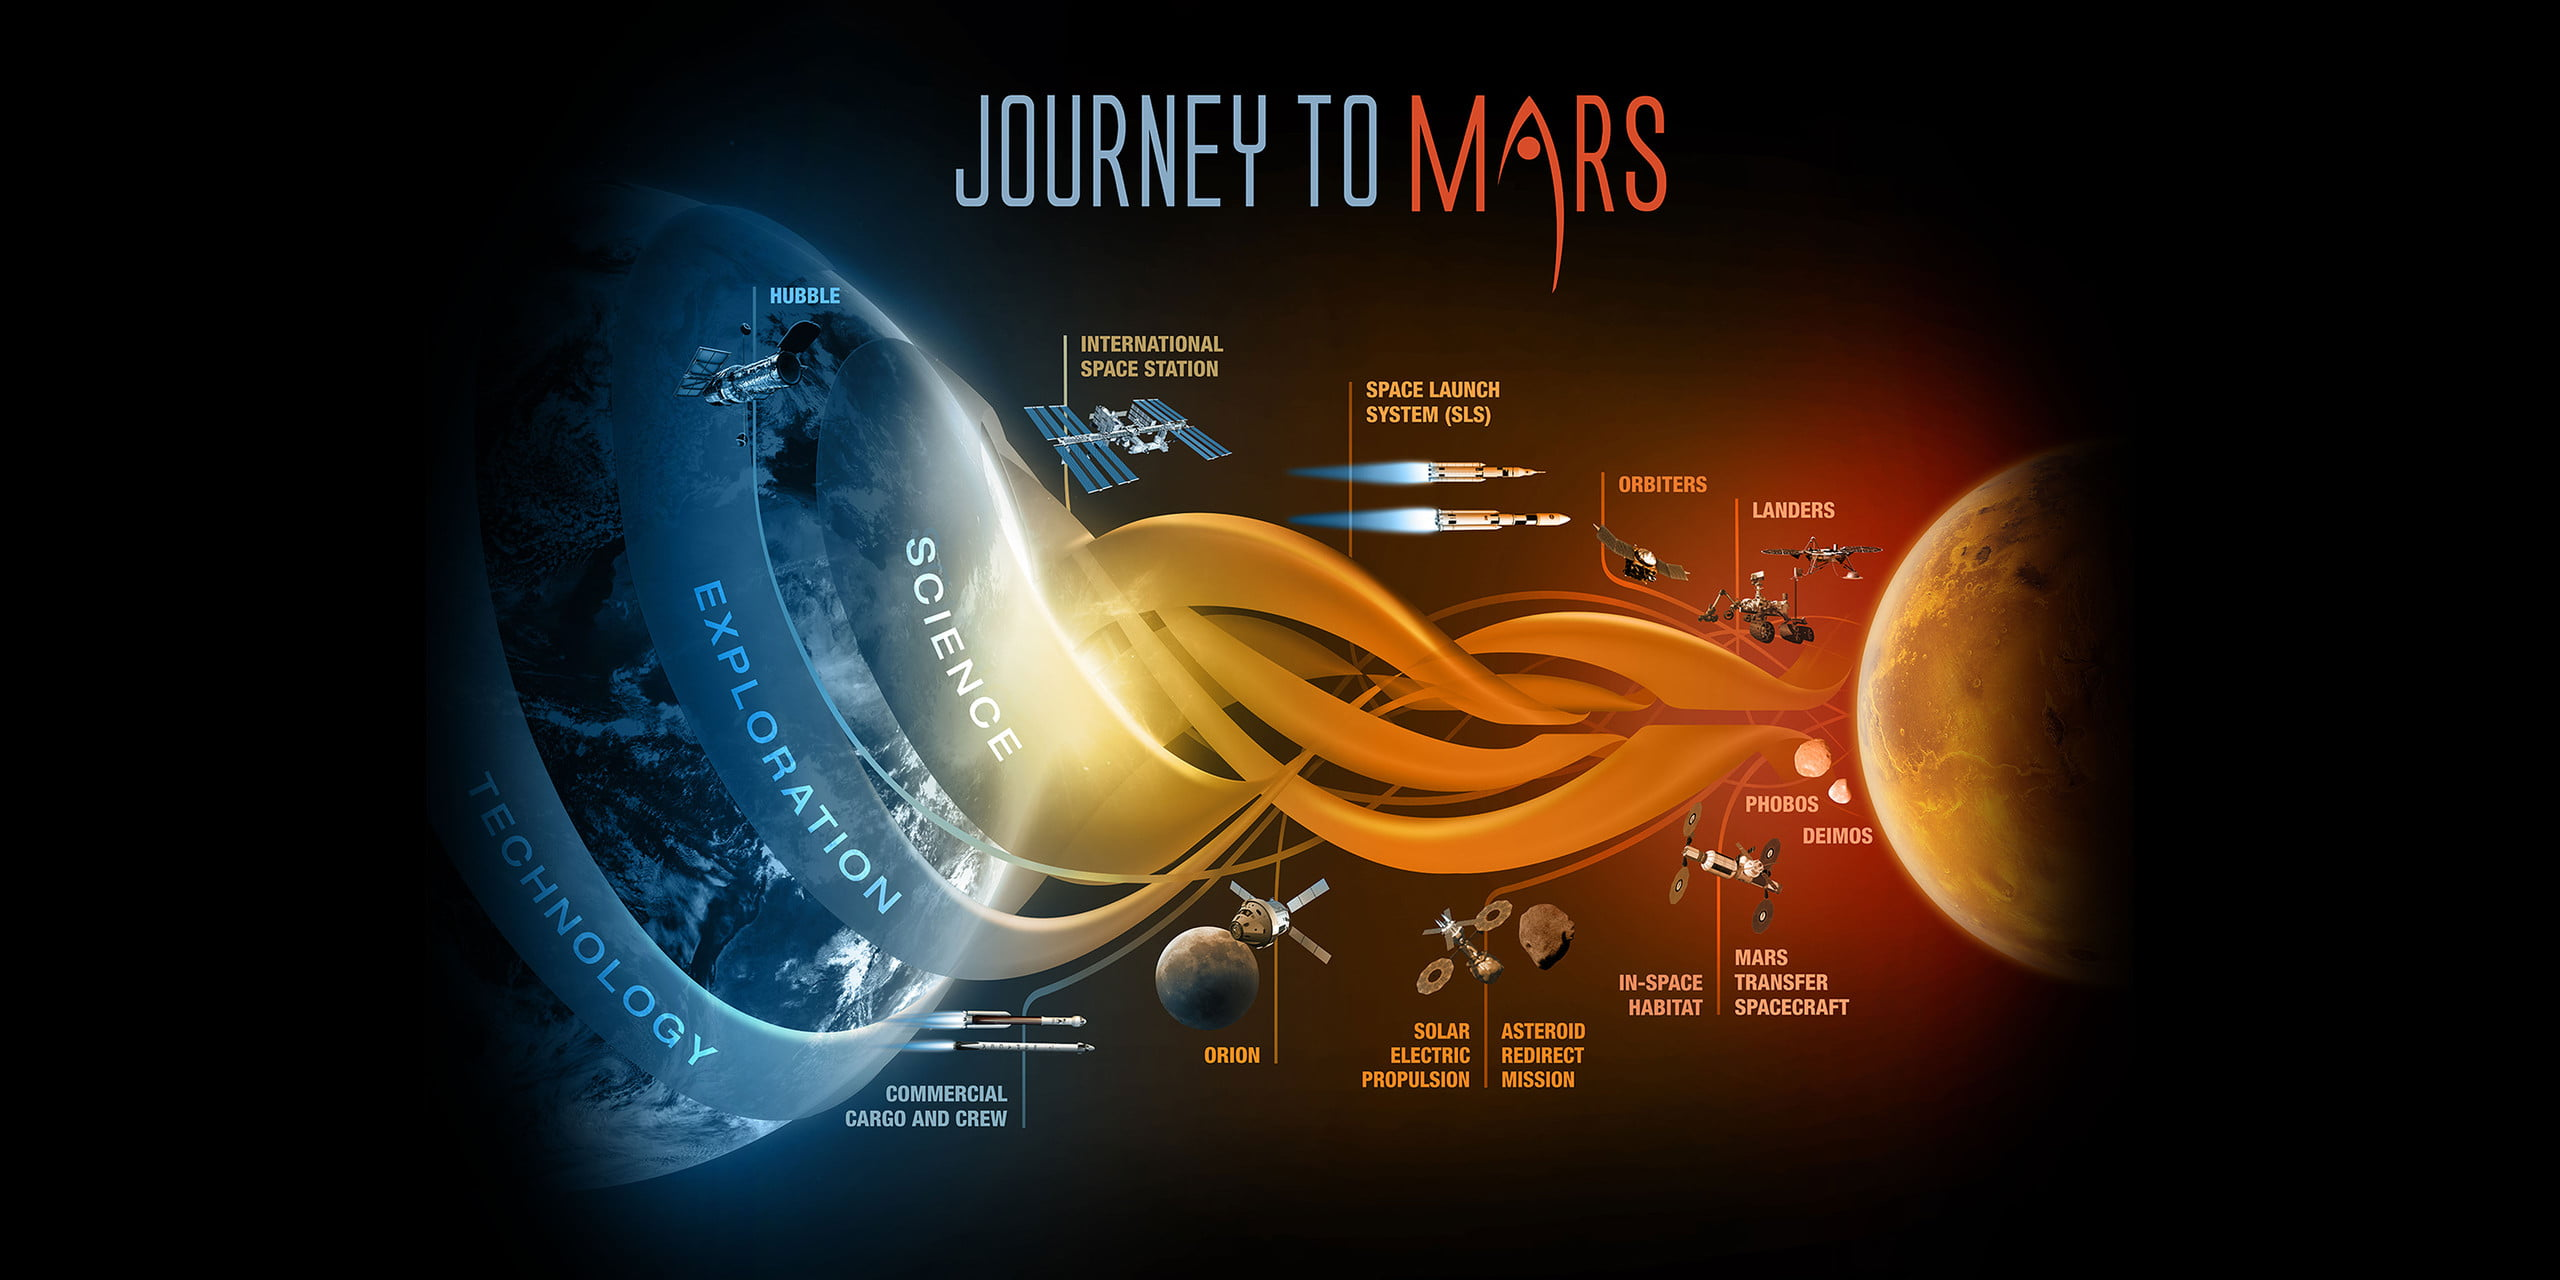 a journey to space Understanding space weather is a crucial step for safeguarding earth's economy, and for future missions to other planets material from coronal mass ejections usually takes several hours or days to traverse the distance between the sun and earth.